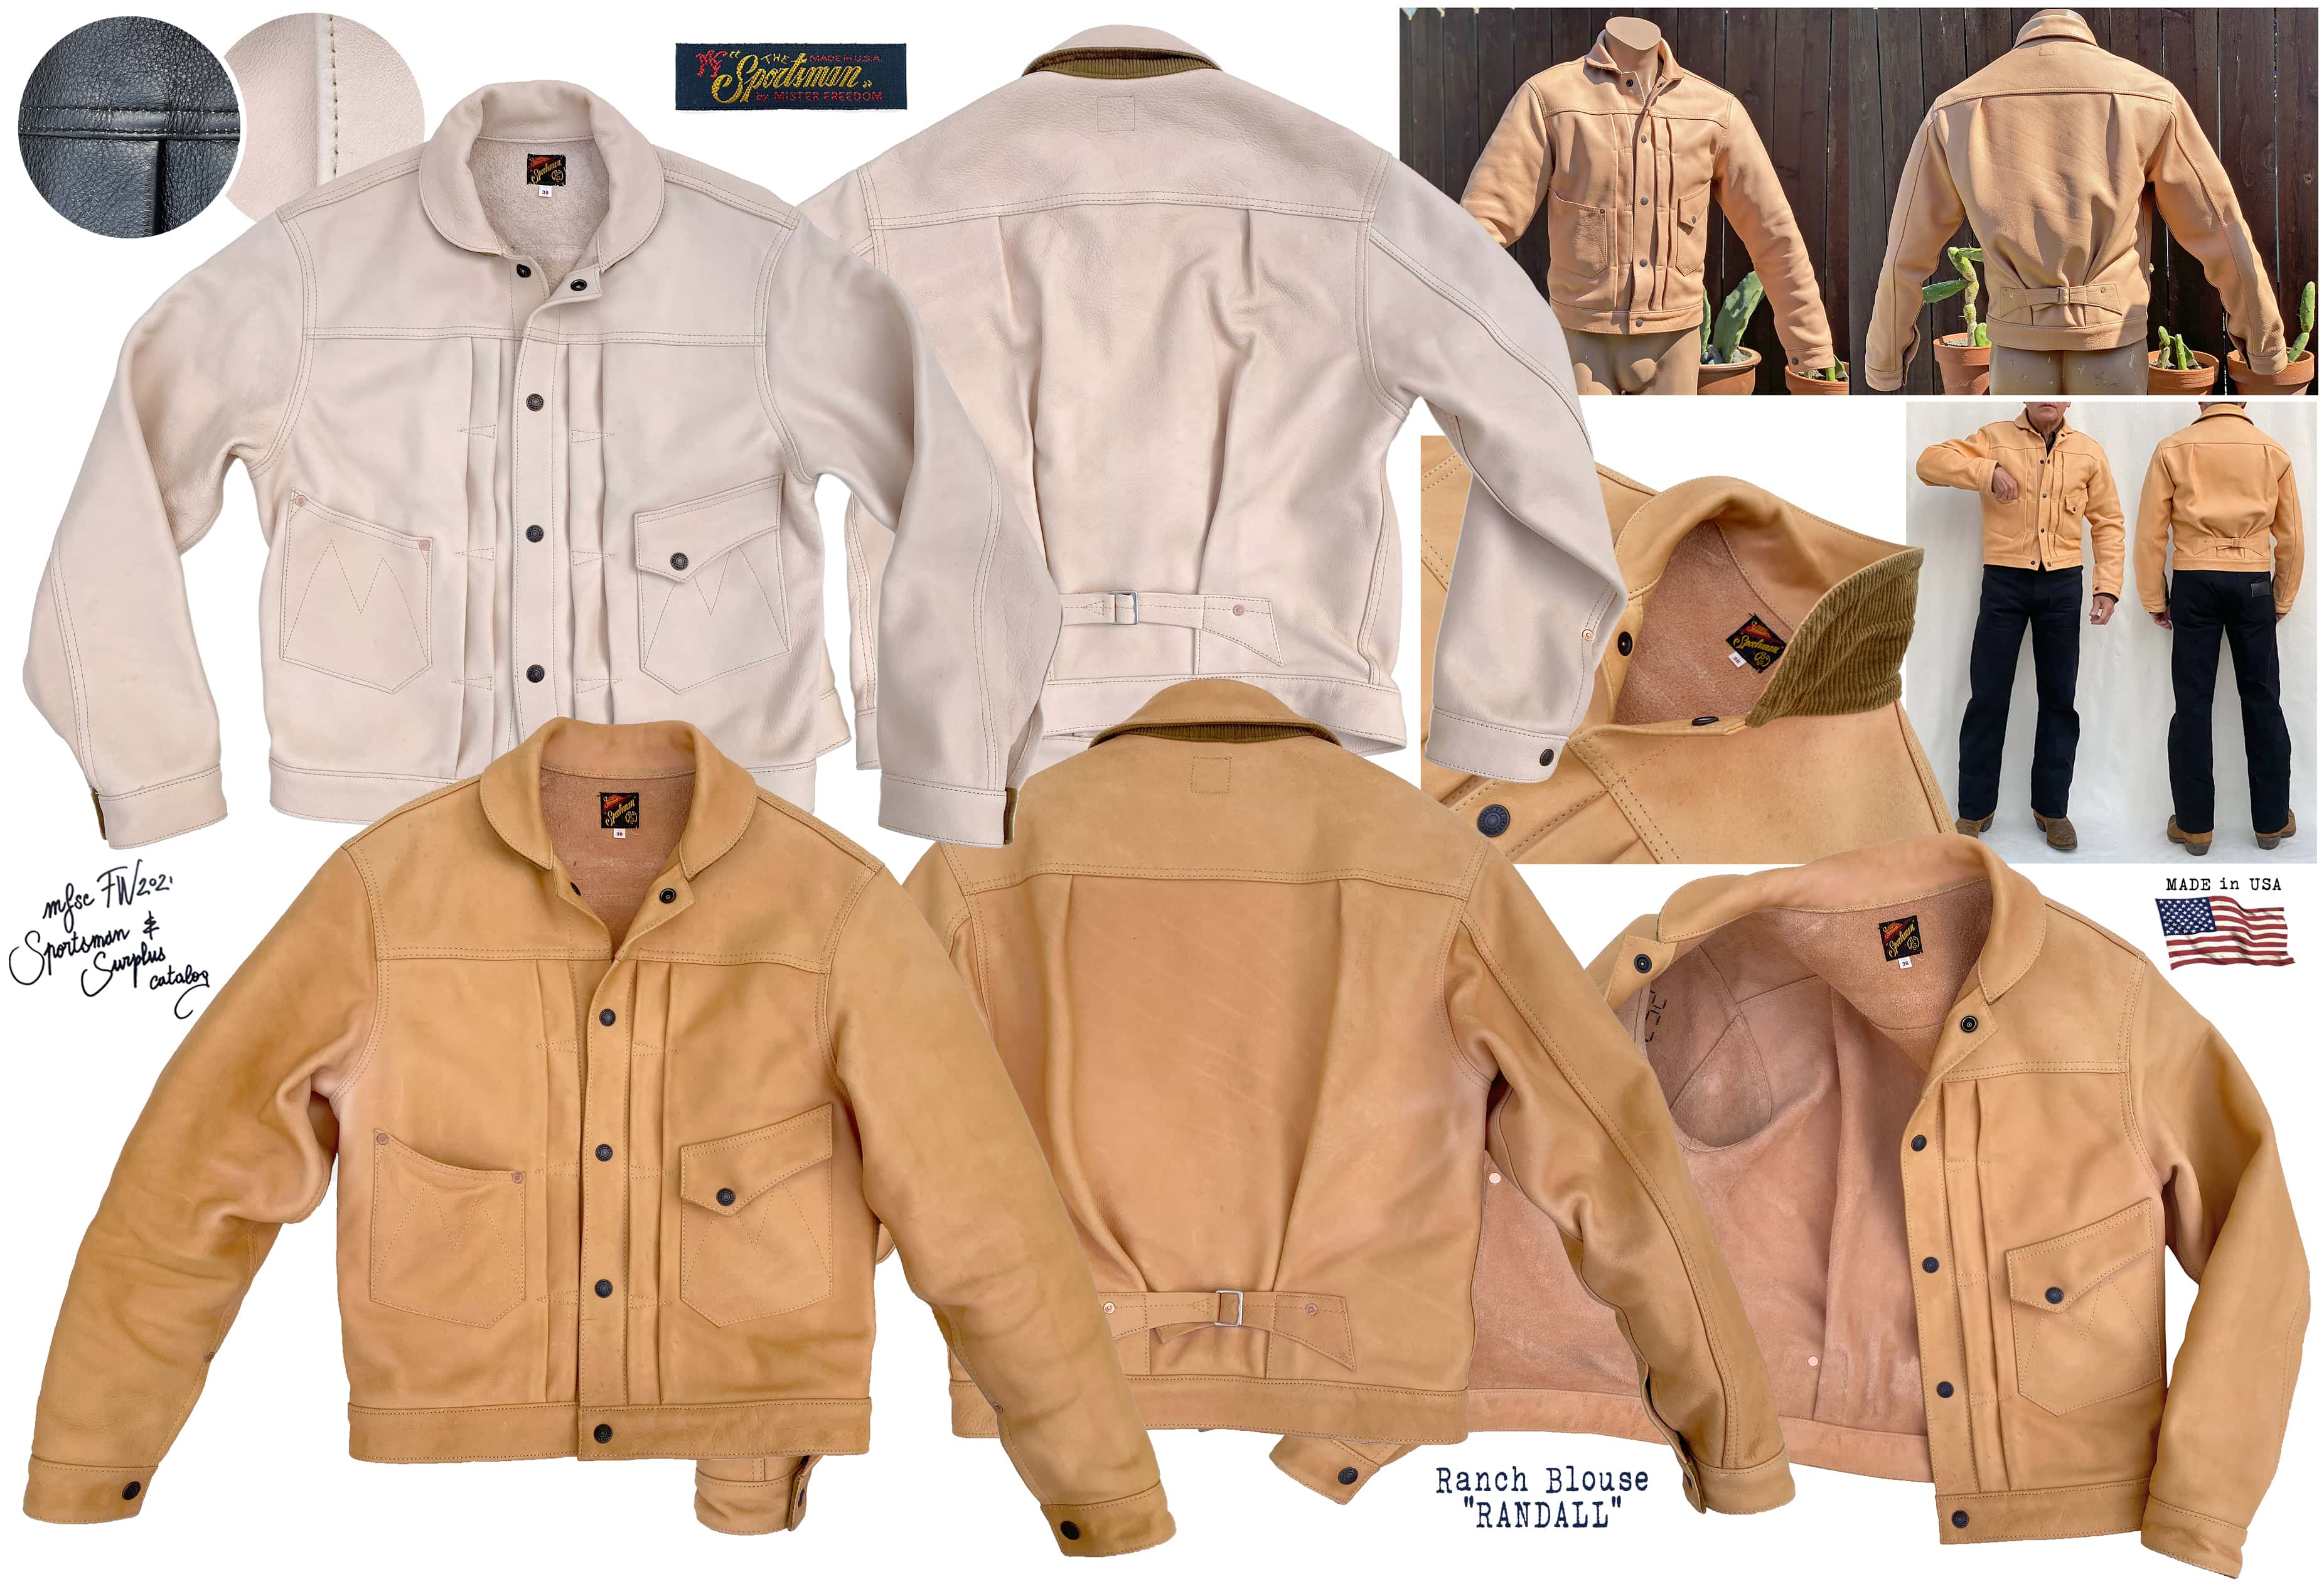 Mister Freedom®Ranch Blouse natural veg-tan leather jacket made in USA